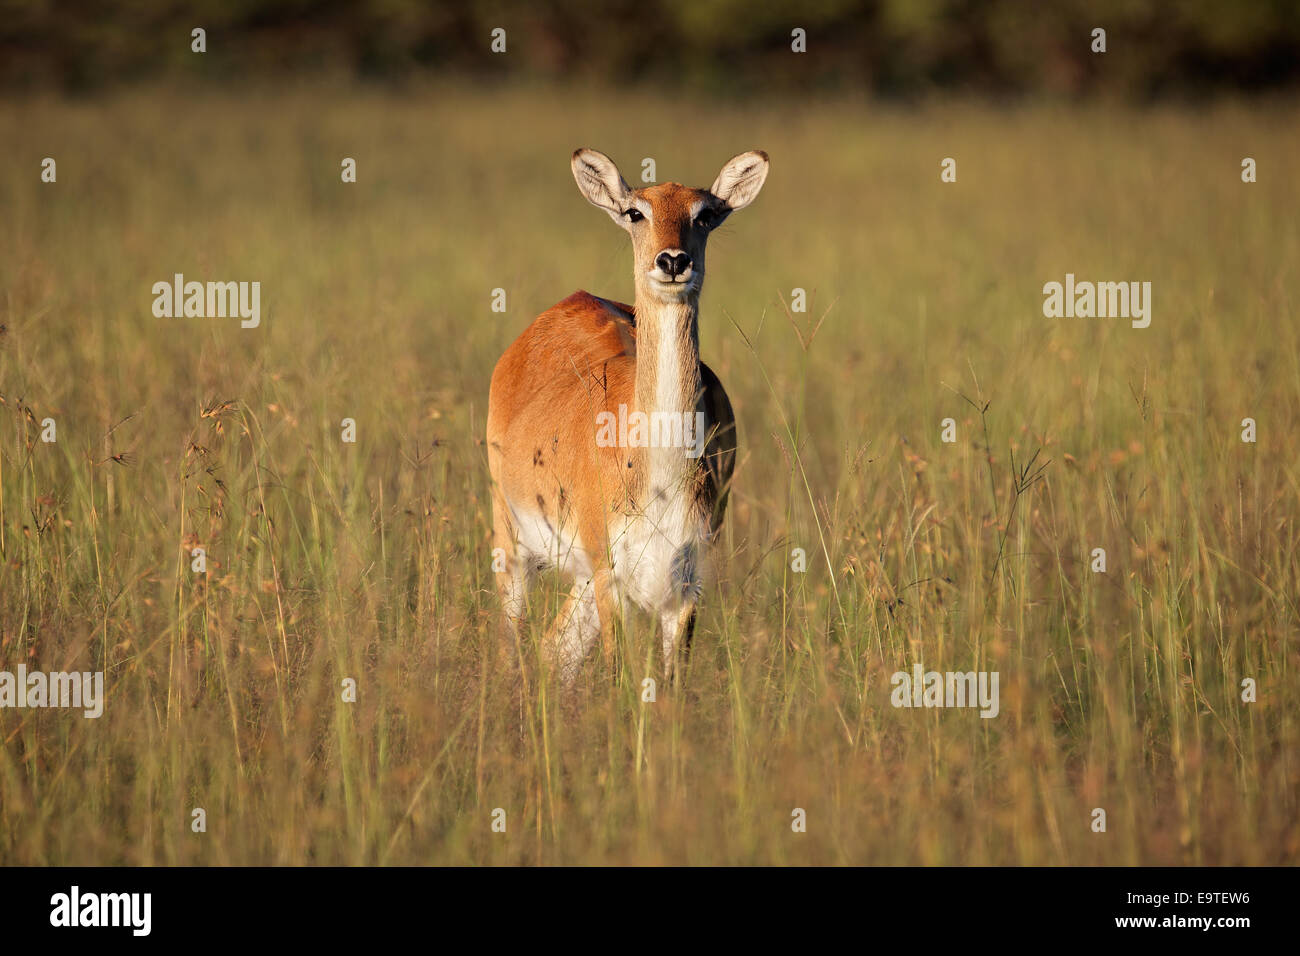 Female red lechwe antelope (Kobus leche) in tall grass, southern Africa - Stock Image